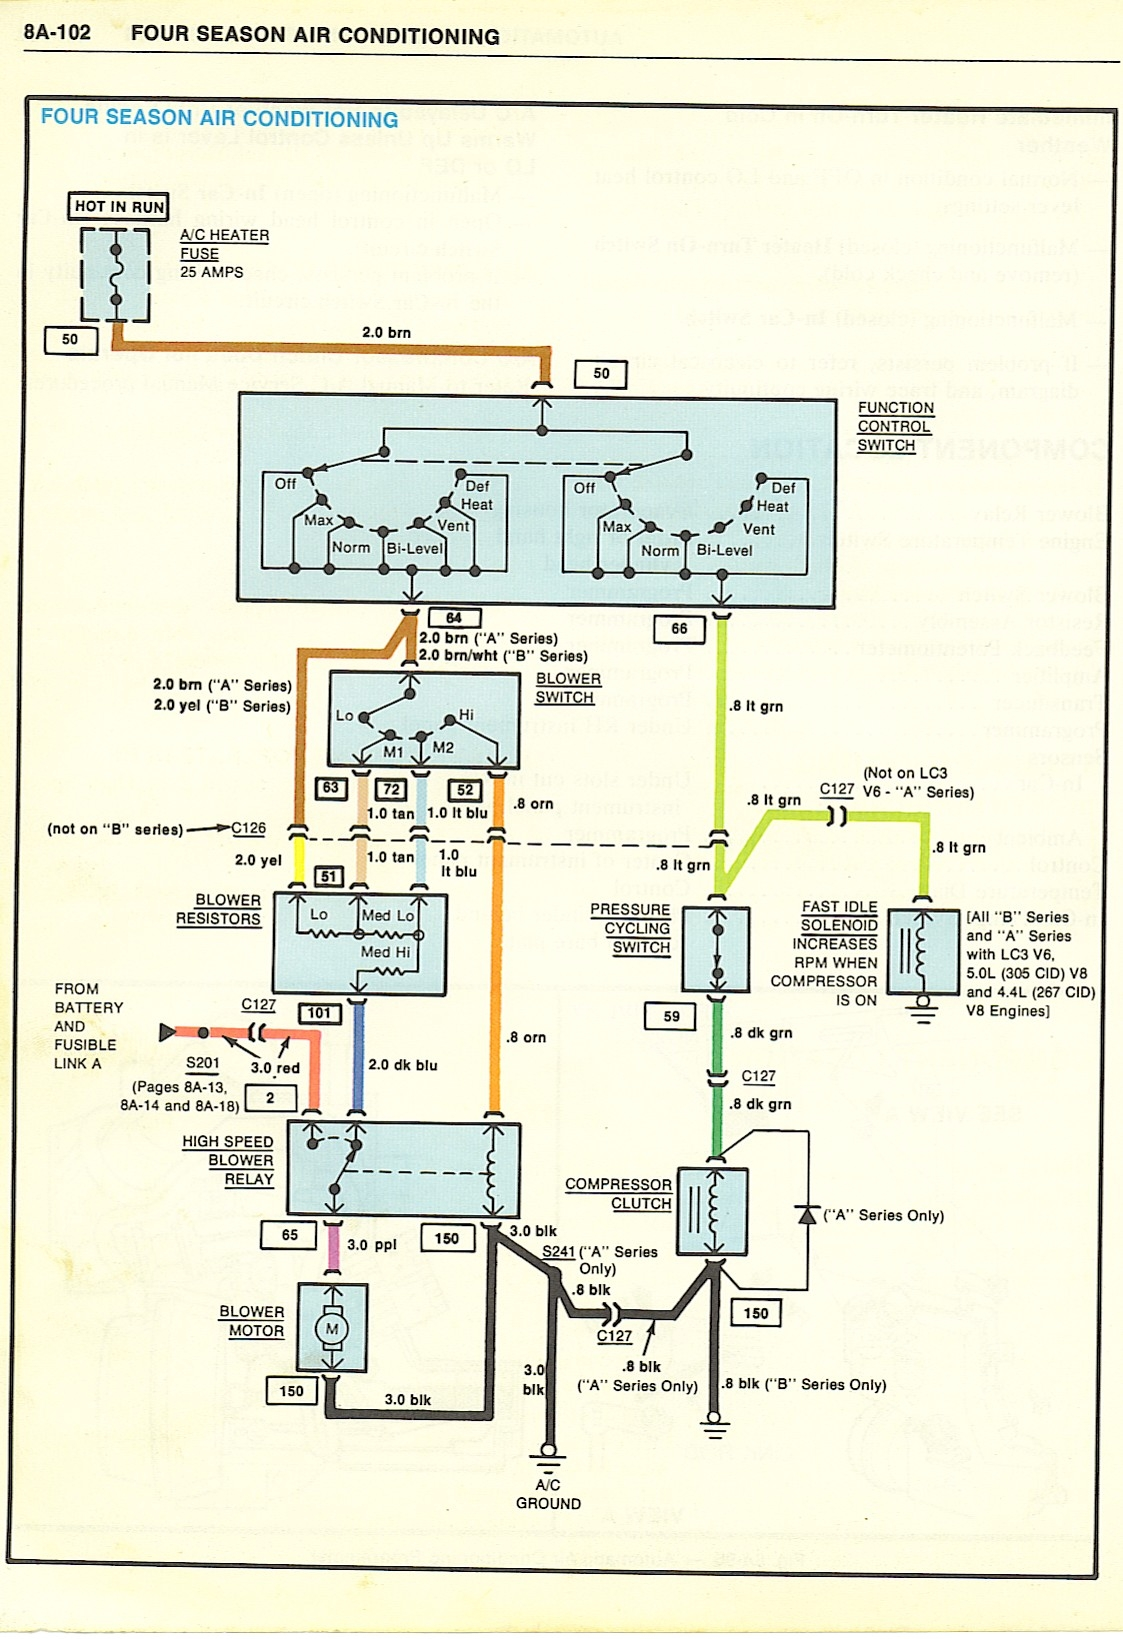 1968 FourSeasonAirConditioner chevy diagrams 1980 corvette wiring diagram at pacquiaovsvargaslive.co